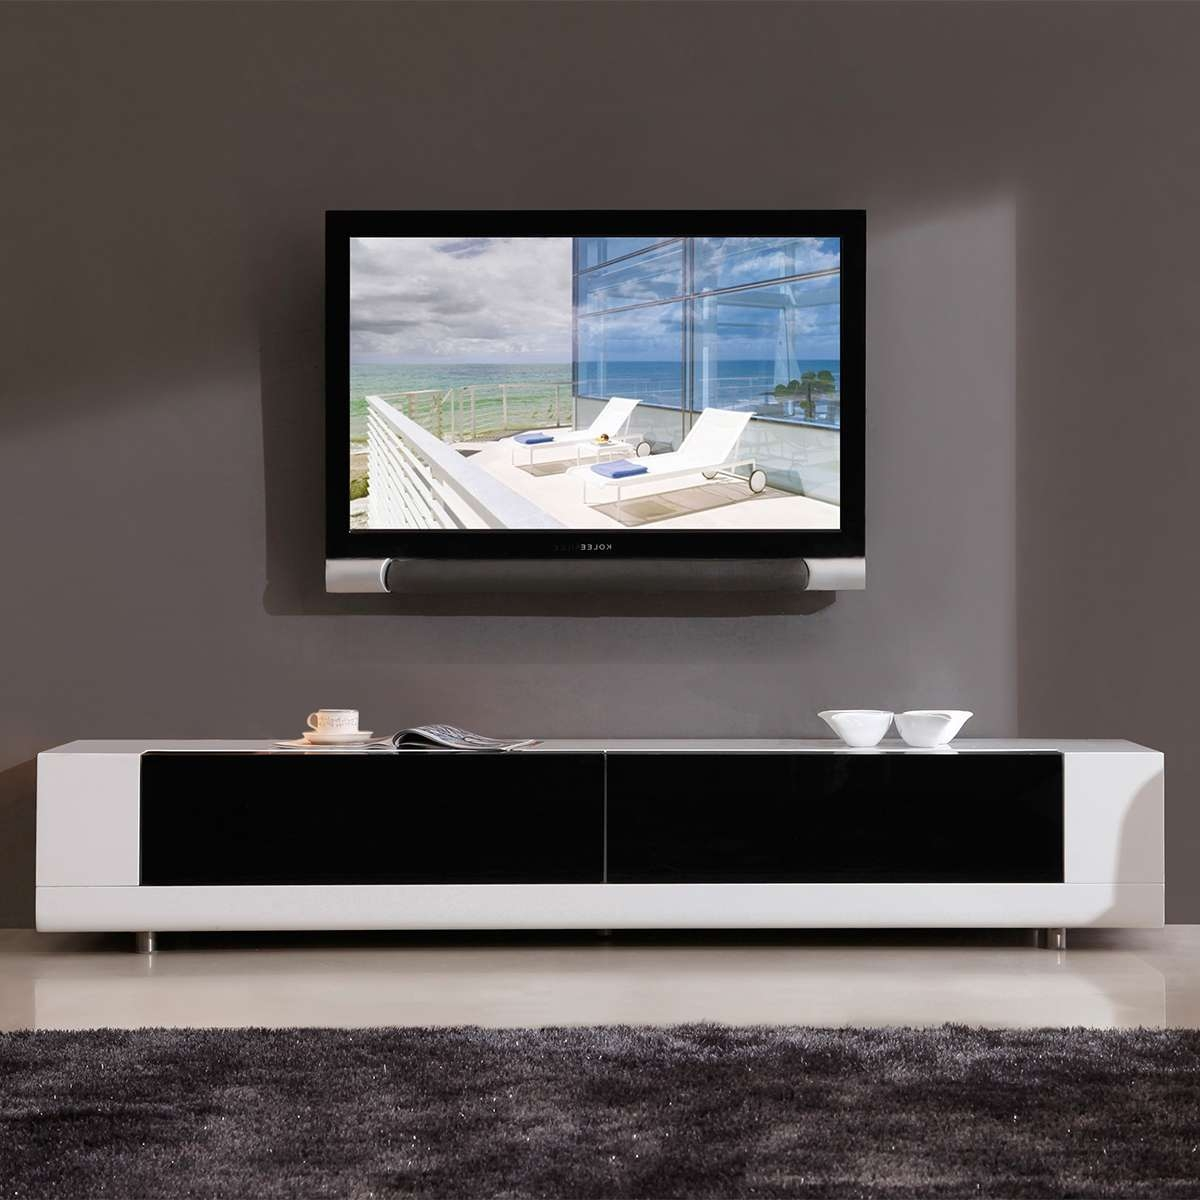 Low Profile Tv Stand 60 Inch Oaklow Profile Tv Stand With Drawers Within Modern Low Profile Tv Stands (View 10 of 20)